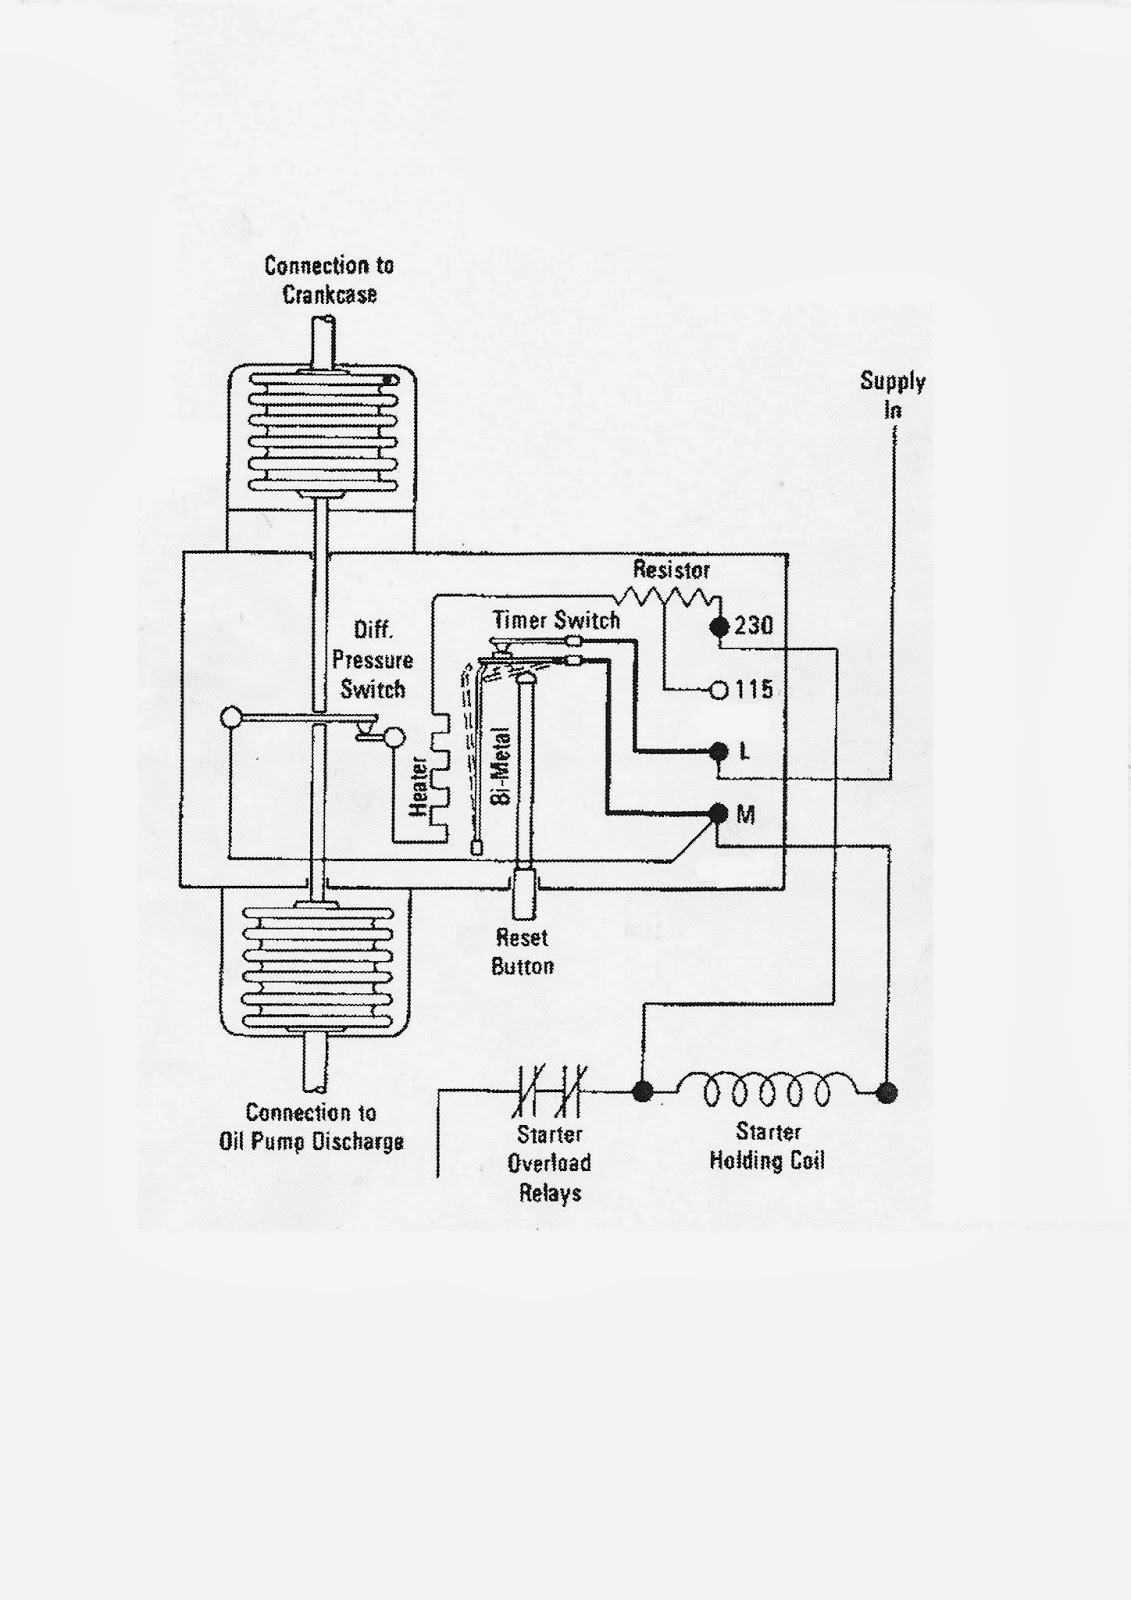 Mycom Reciprocating compressor Manual